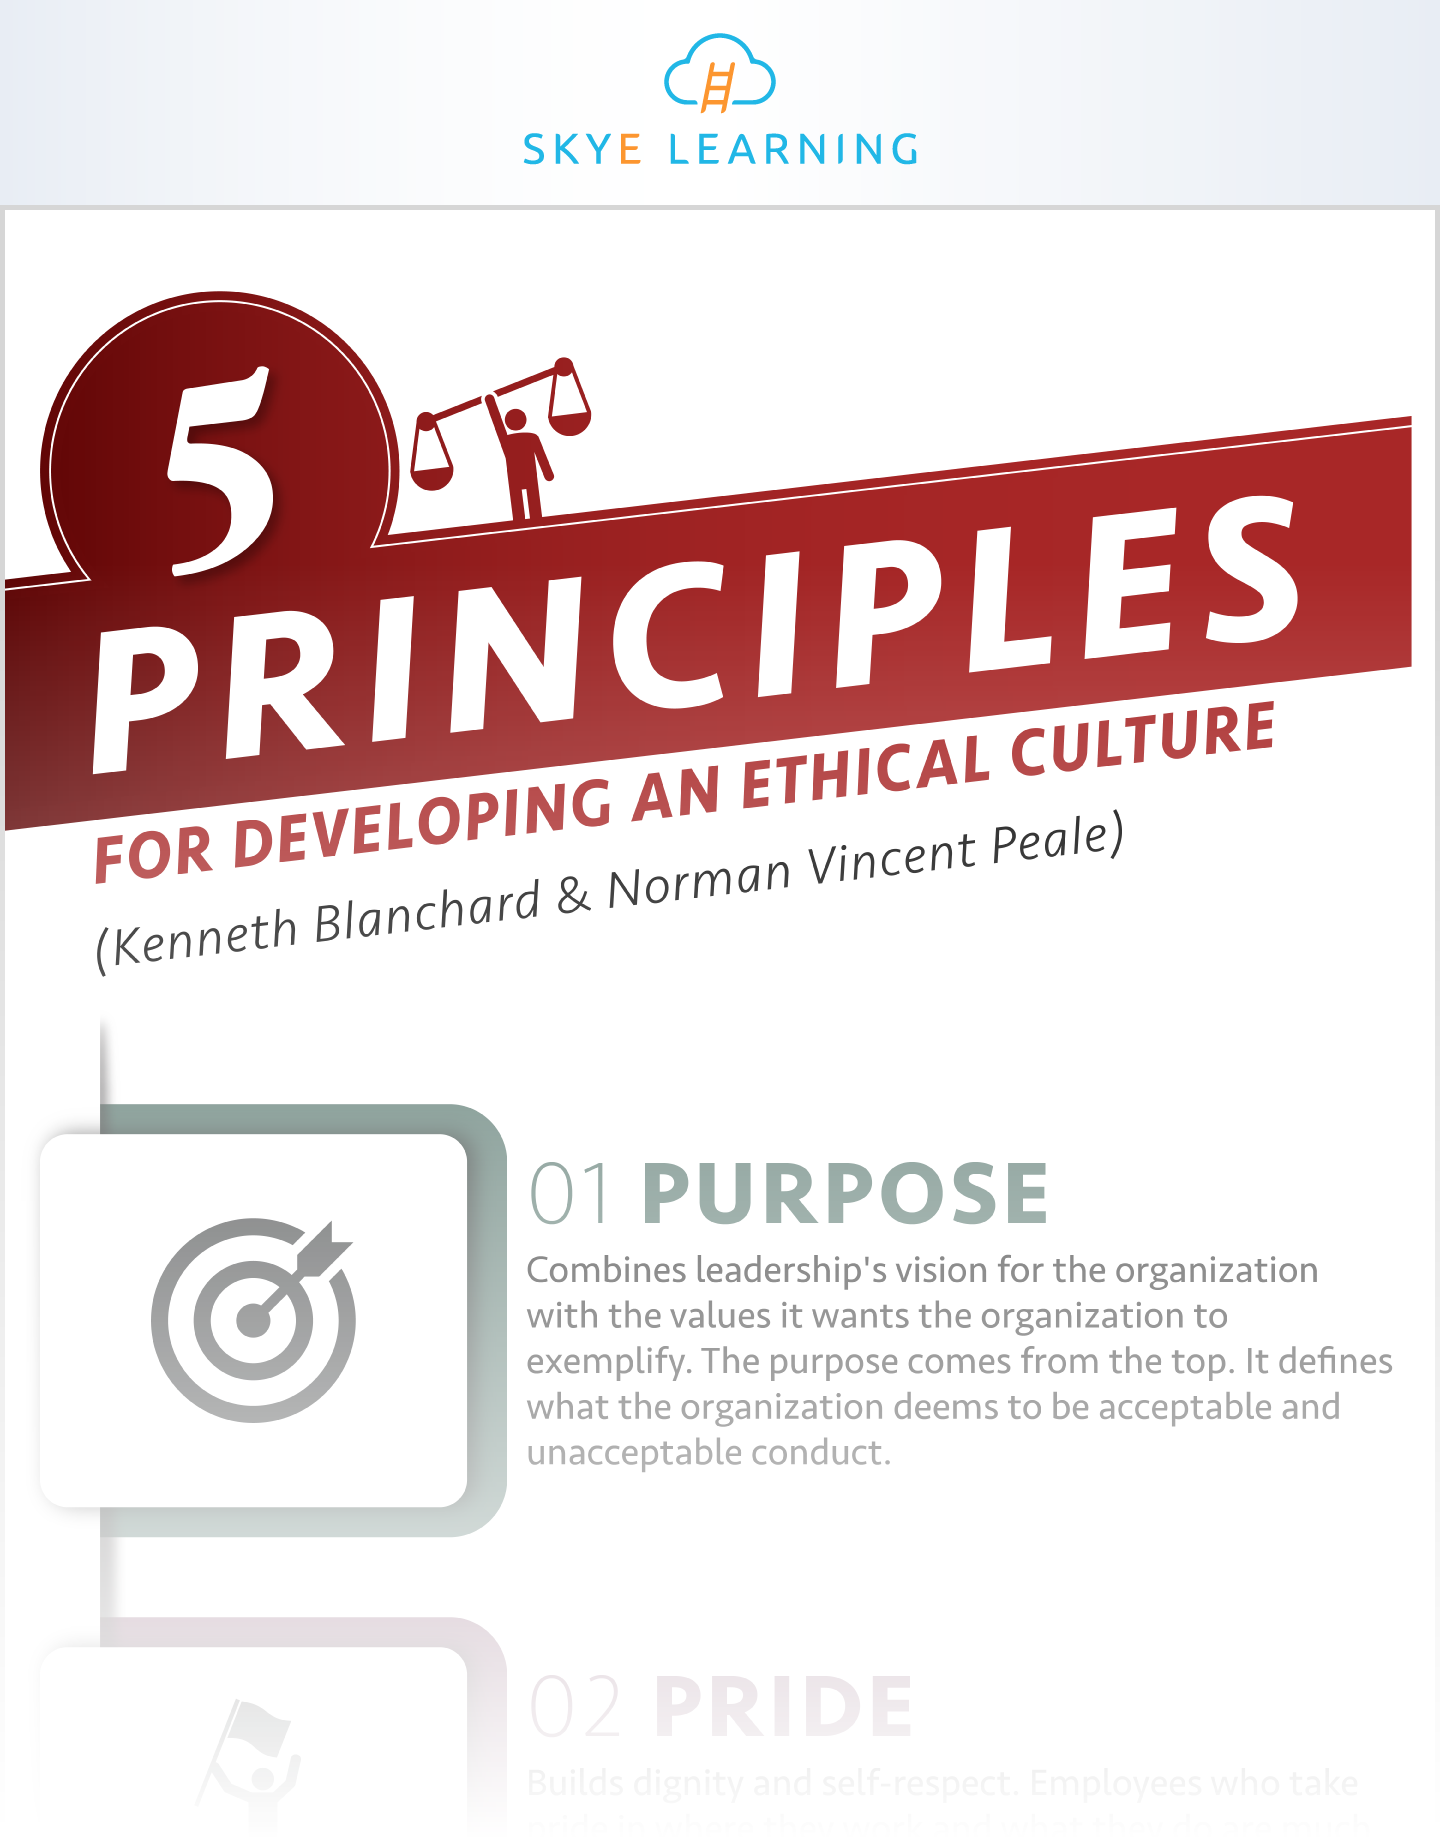 5-Principles-Developing-Ethical-Culture-SL-IG-TRUNCATED